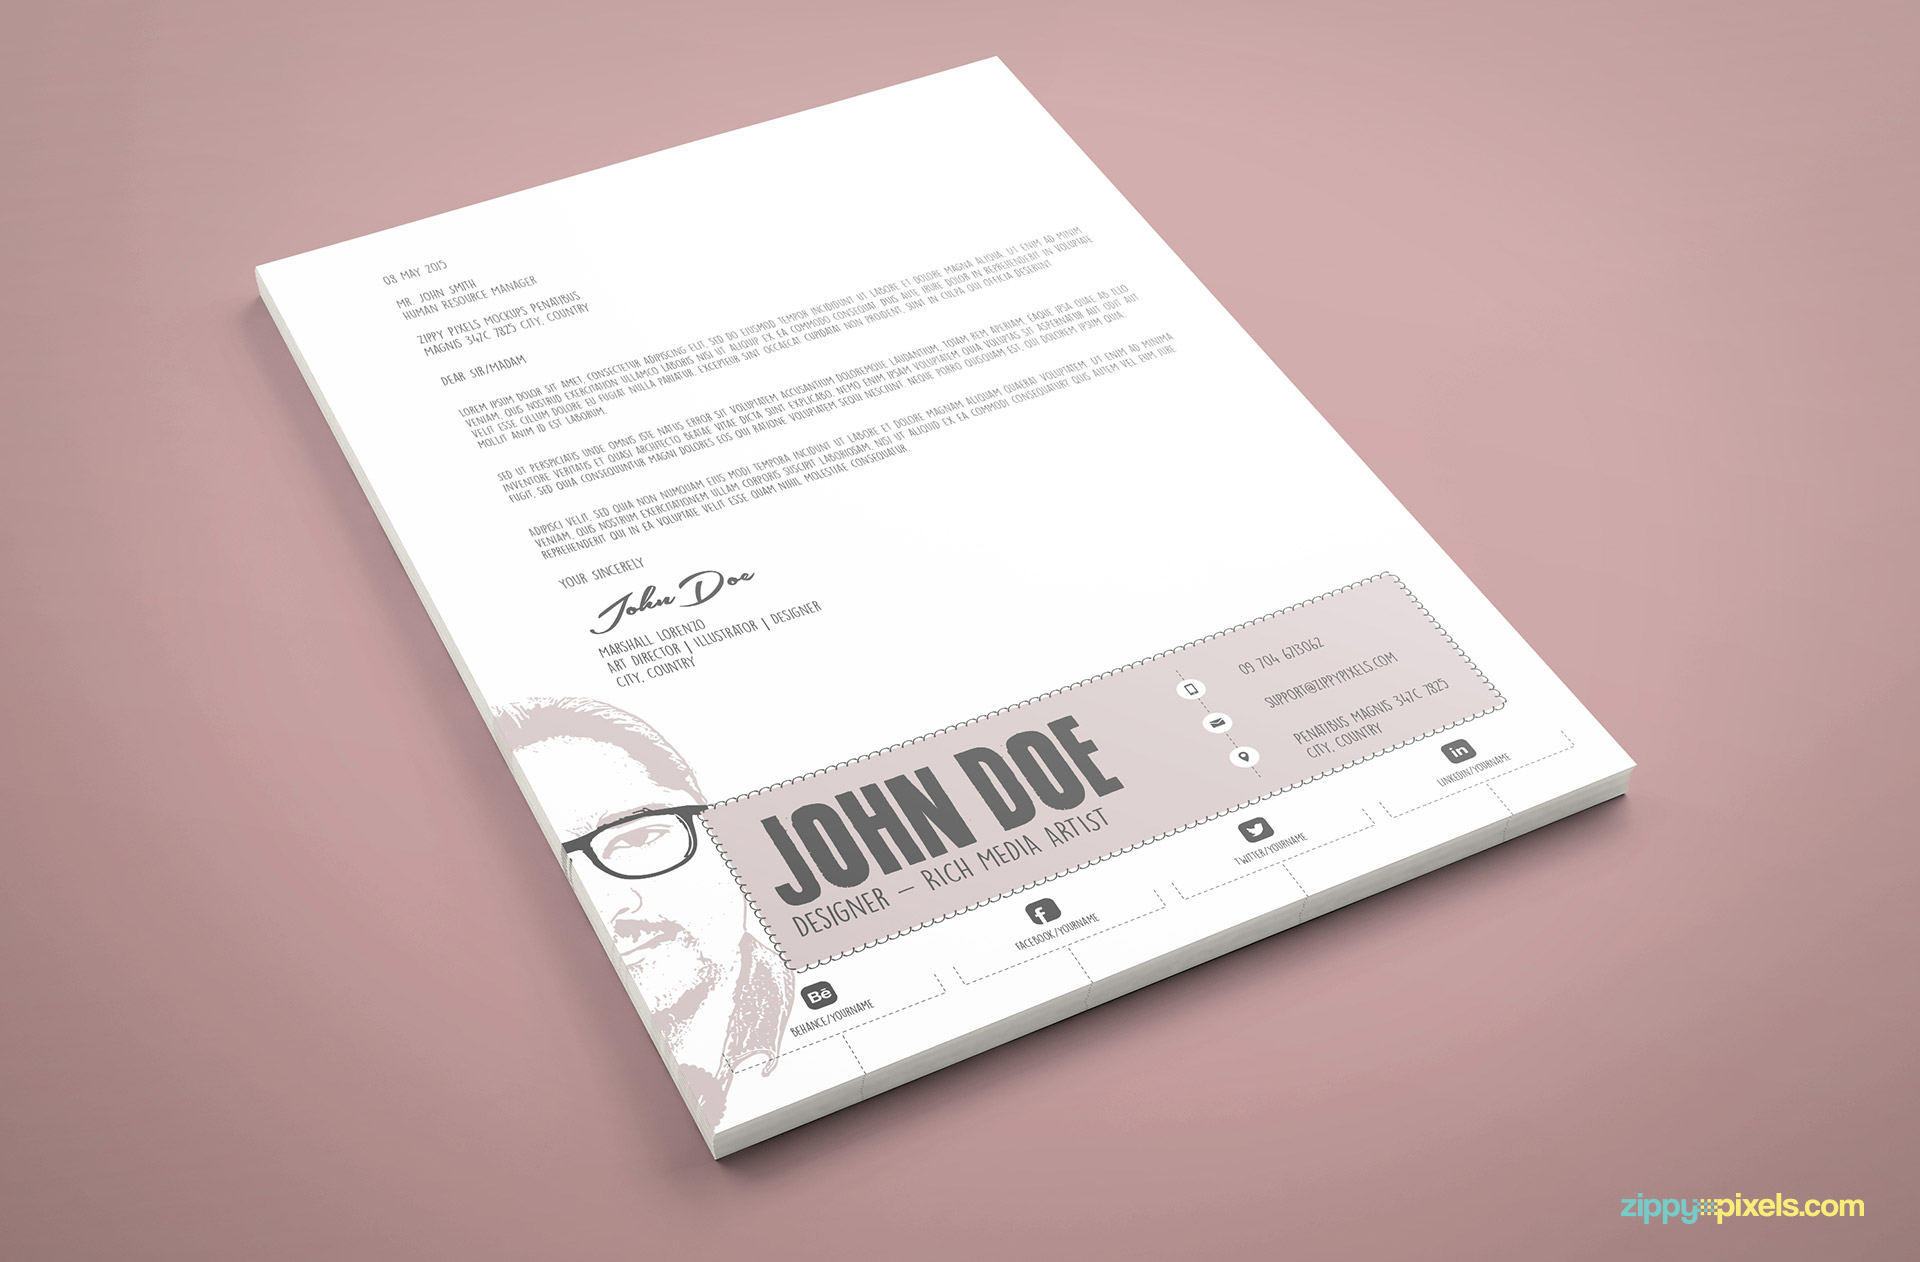 graphic designer resume template psd ai zippypixels